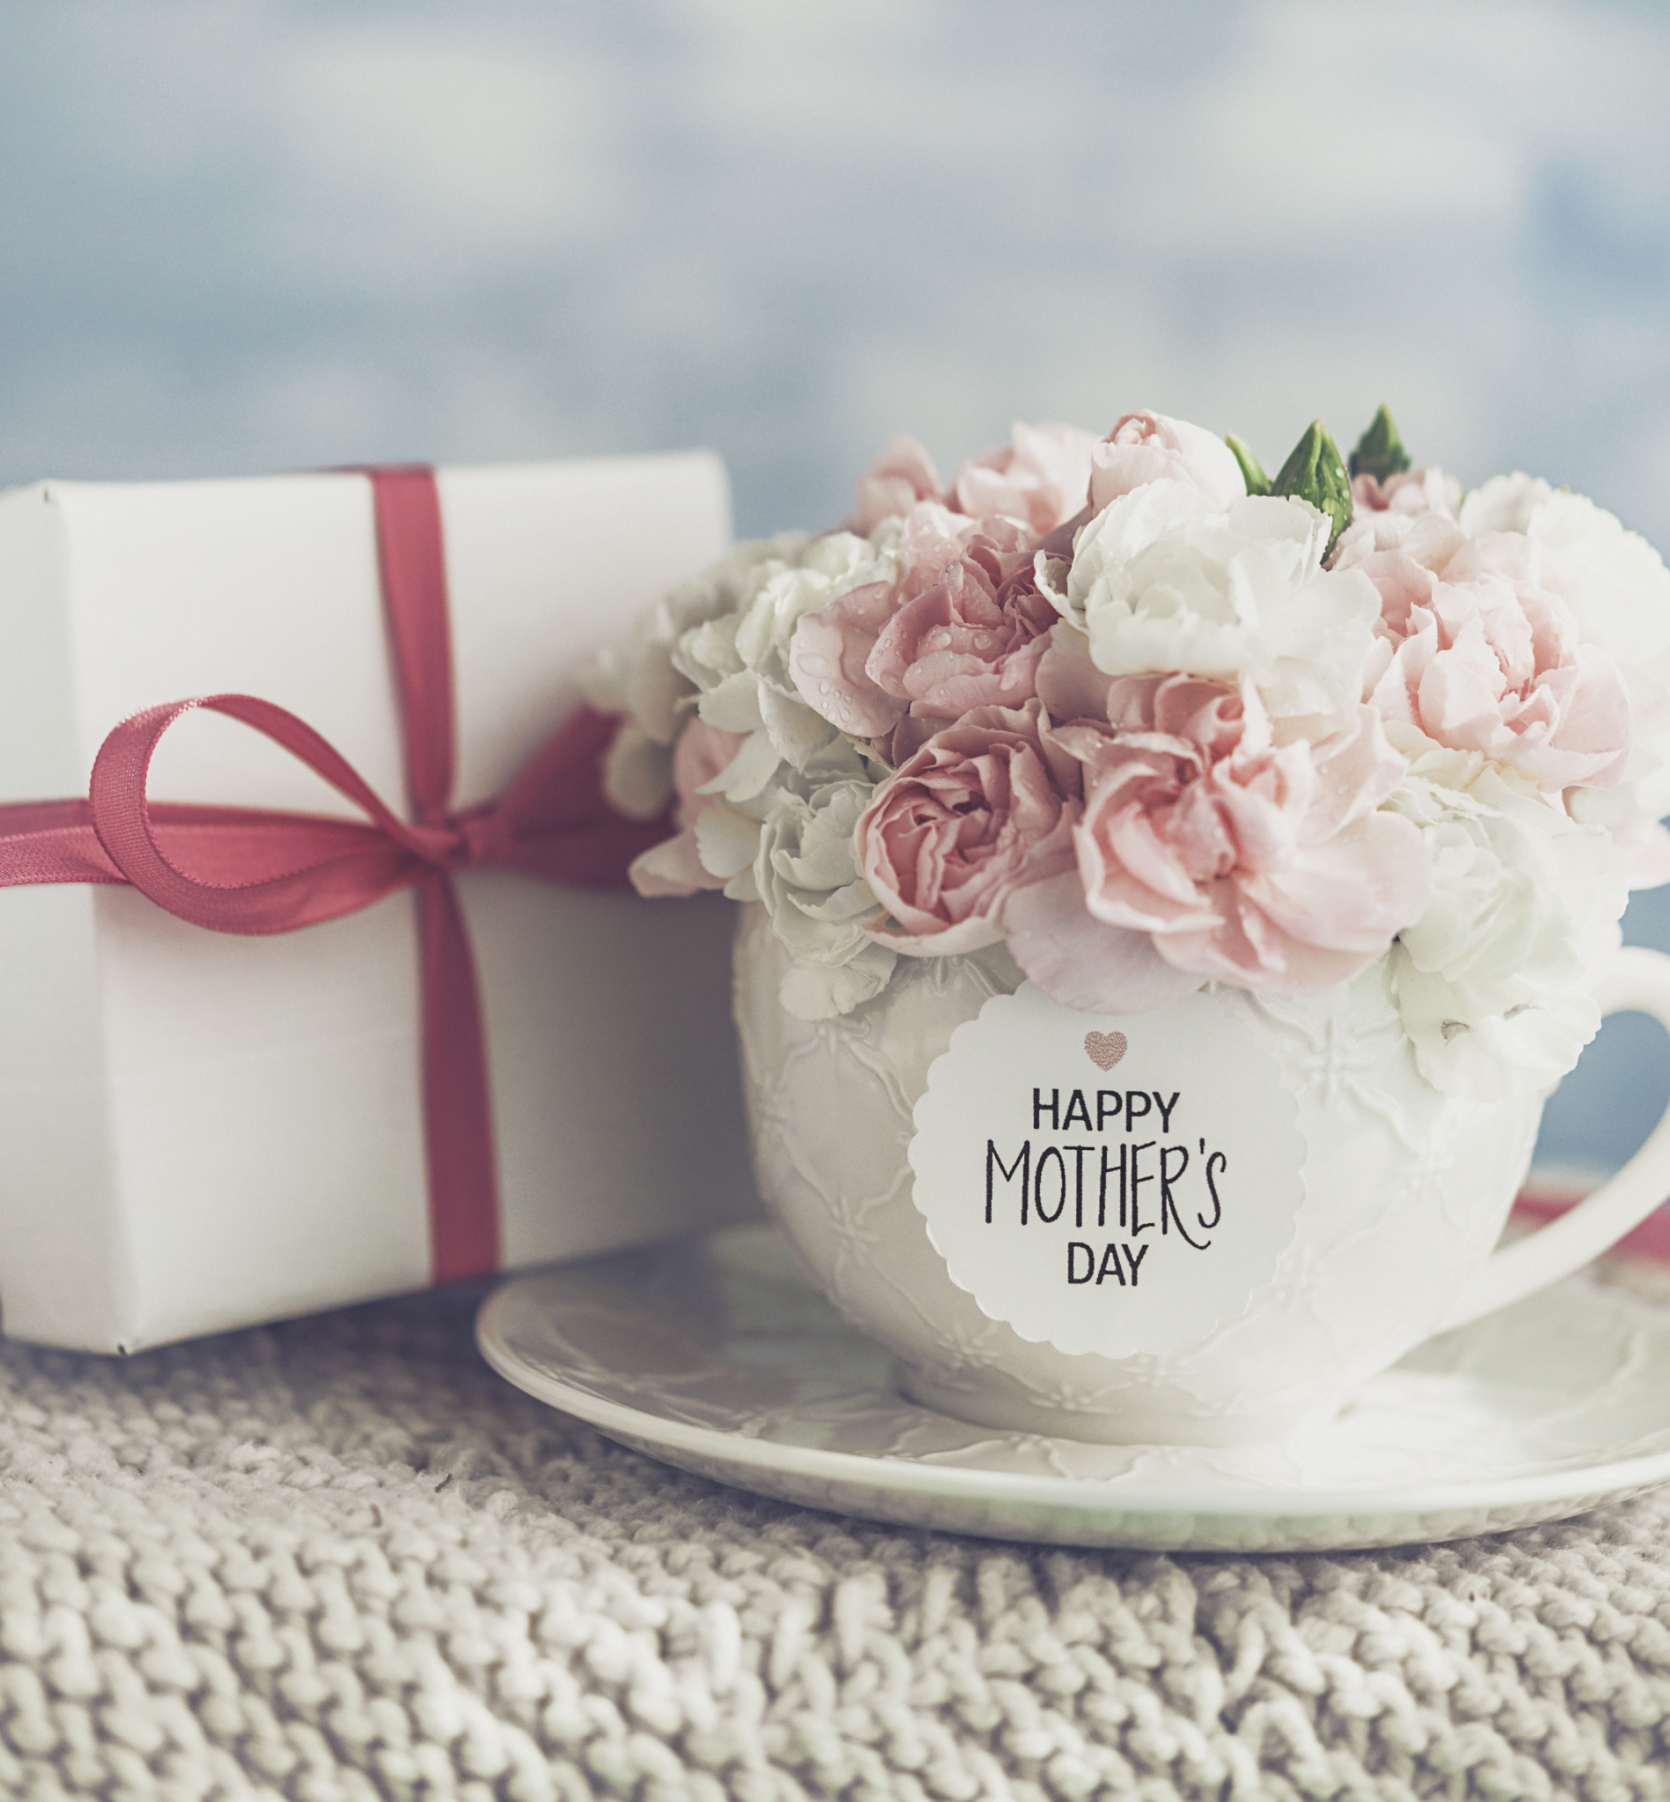 Mother's Day gift and cup filled with fresh carnation bouquet